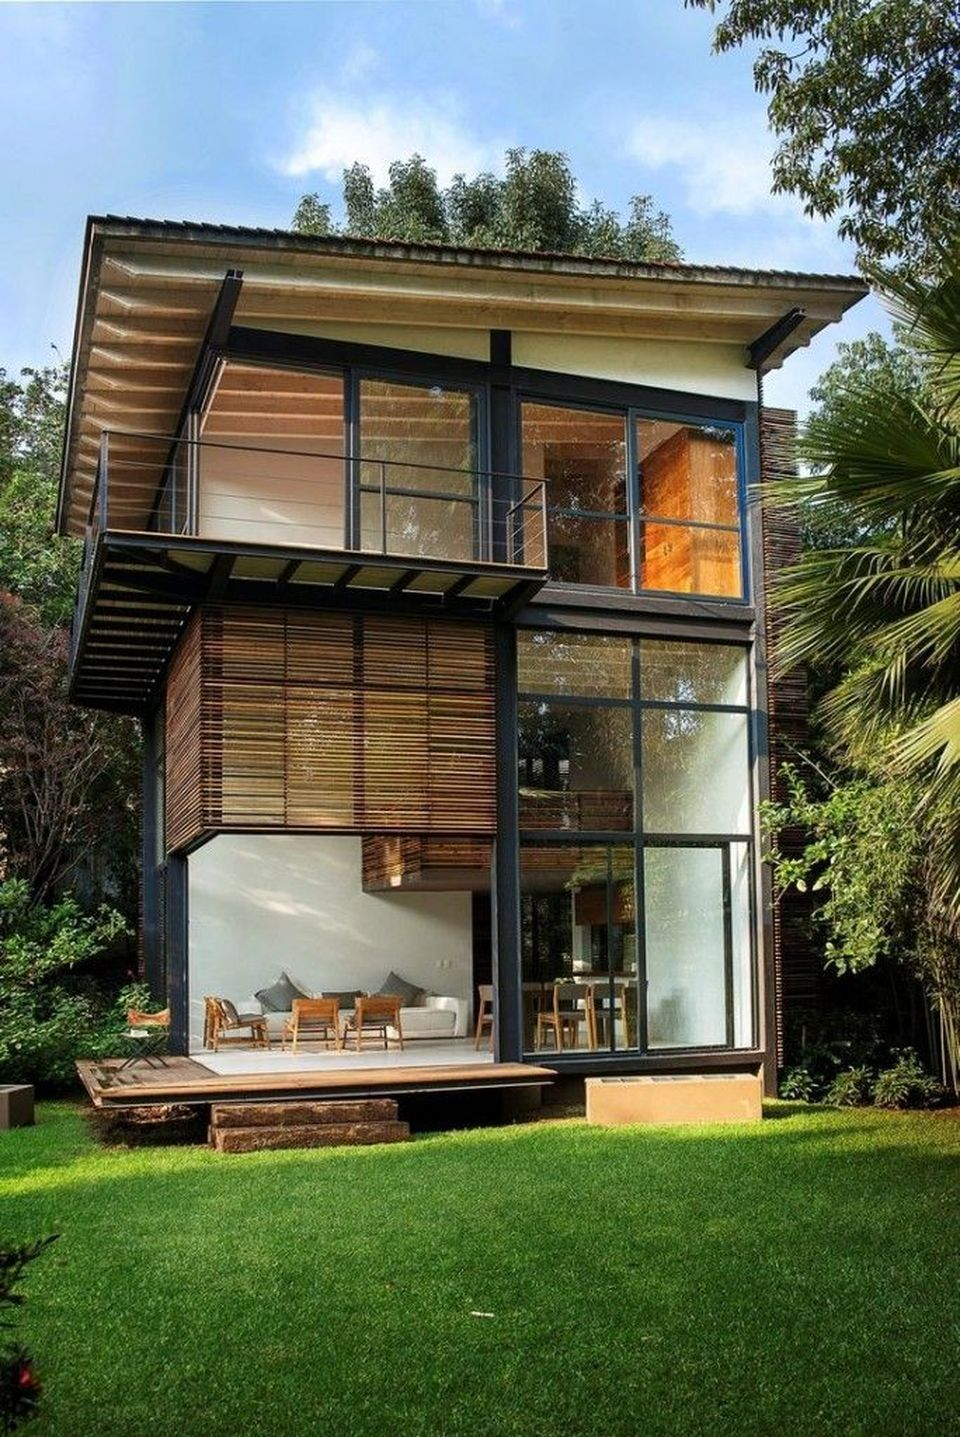 Wooden home design best contemporary small wood homes images on in modern house timber designs australia also gambar terbaik di townhouse rh pinterest